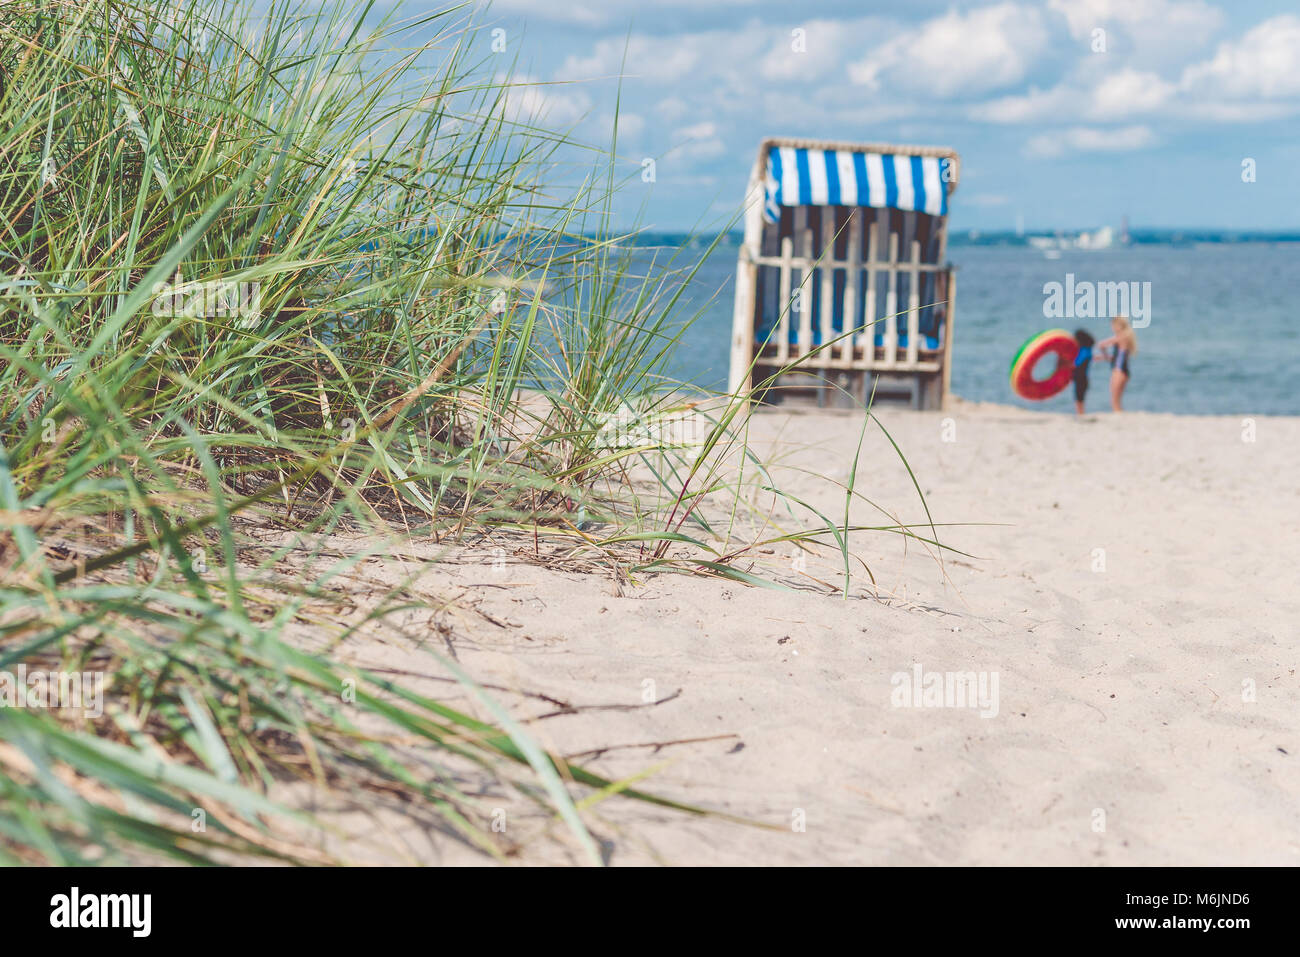 Sand dune with grass and blue colored roofed chairs on sandy beach and blurred kids in Background. Travemunde. Germany - Stock Image